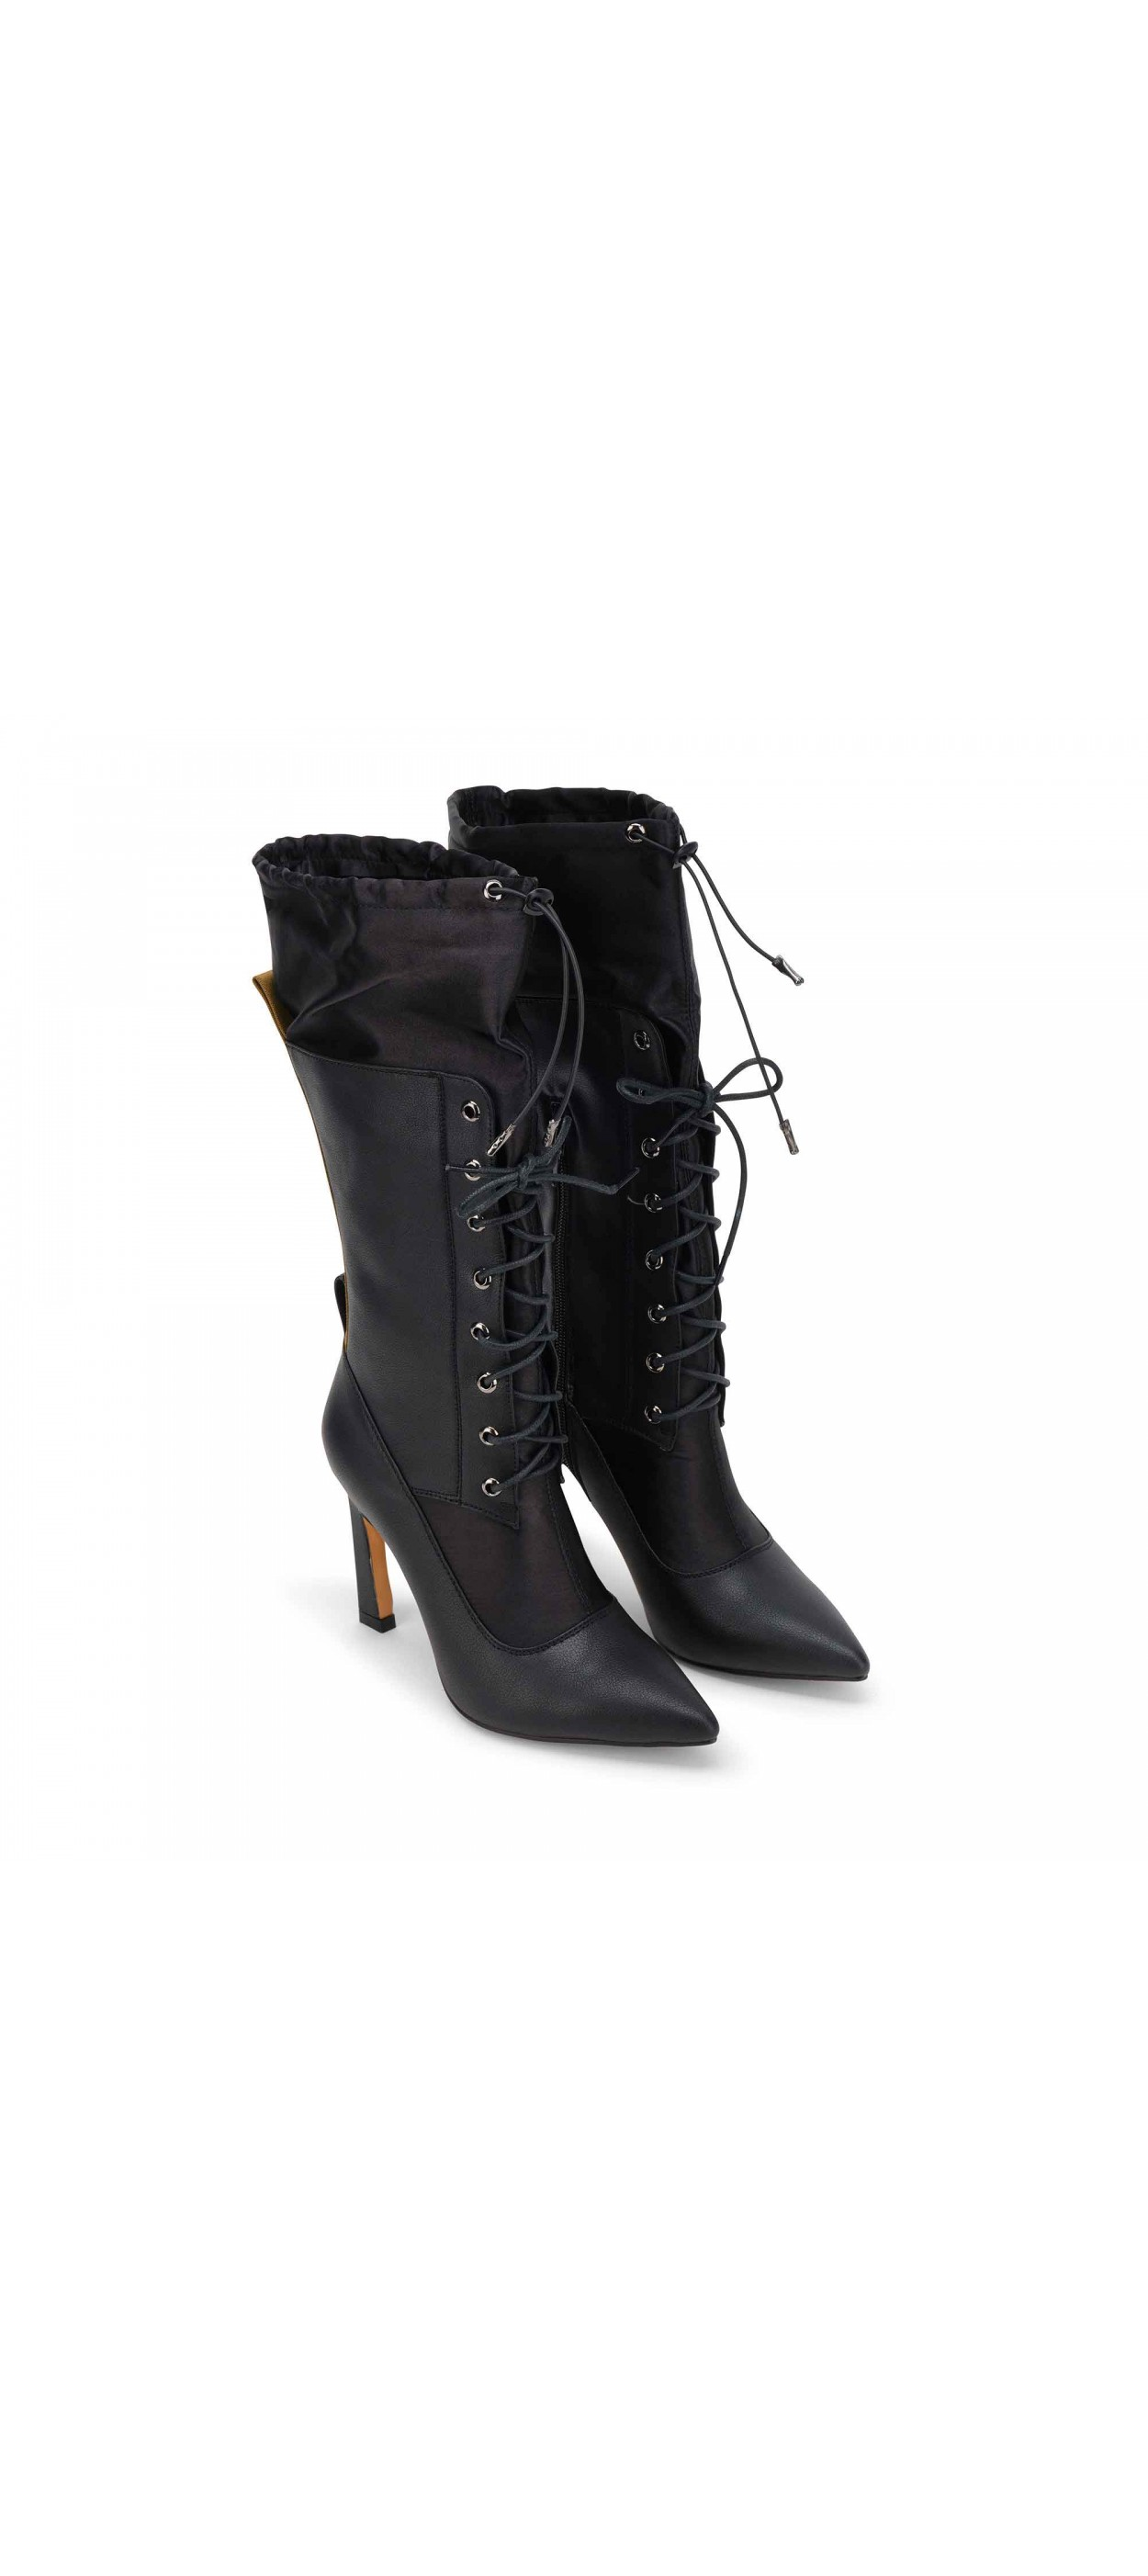 BOOTIES - GBDA1801 - GAELLE PARIS